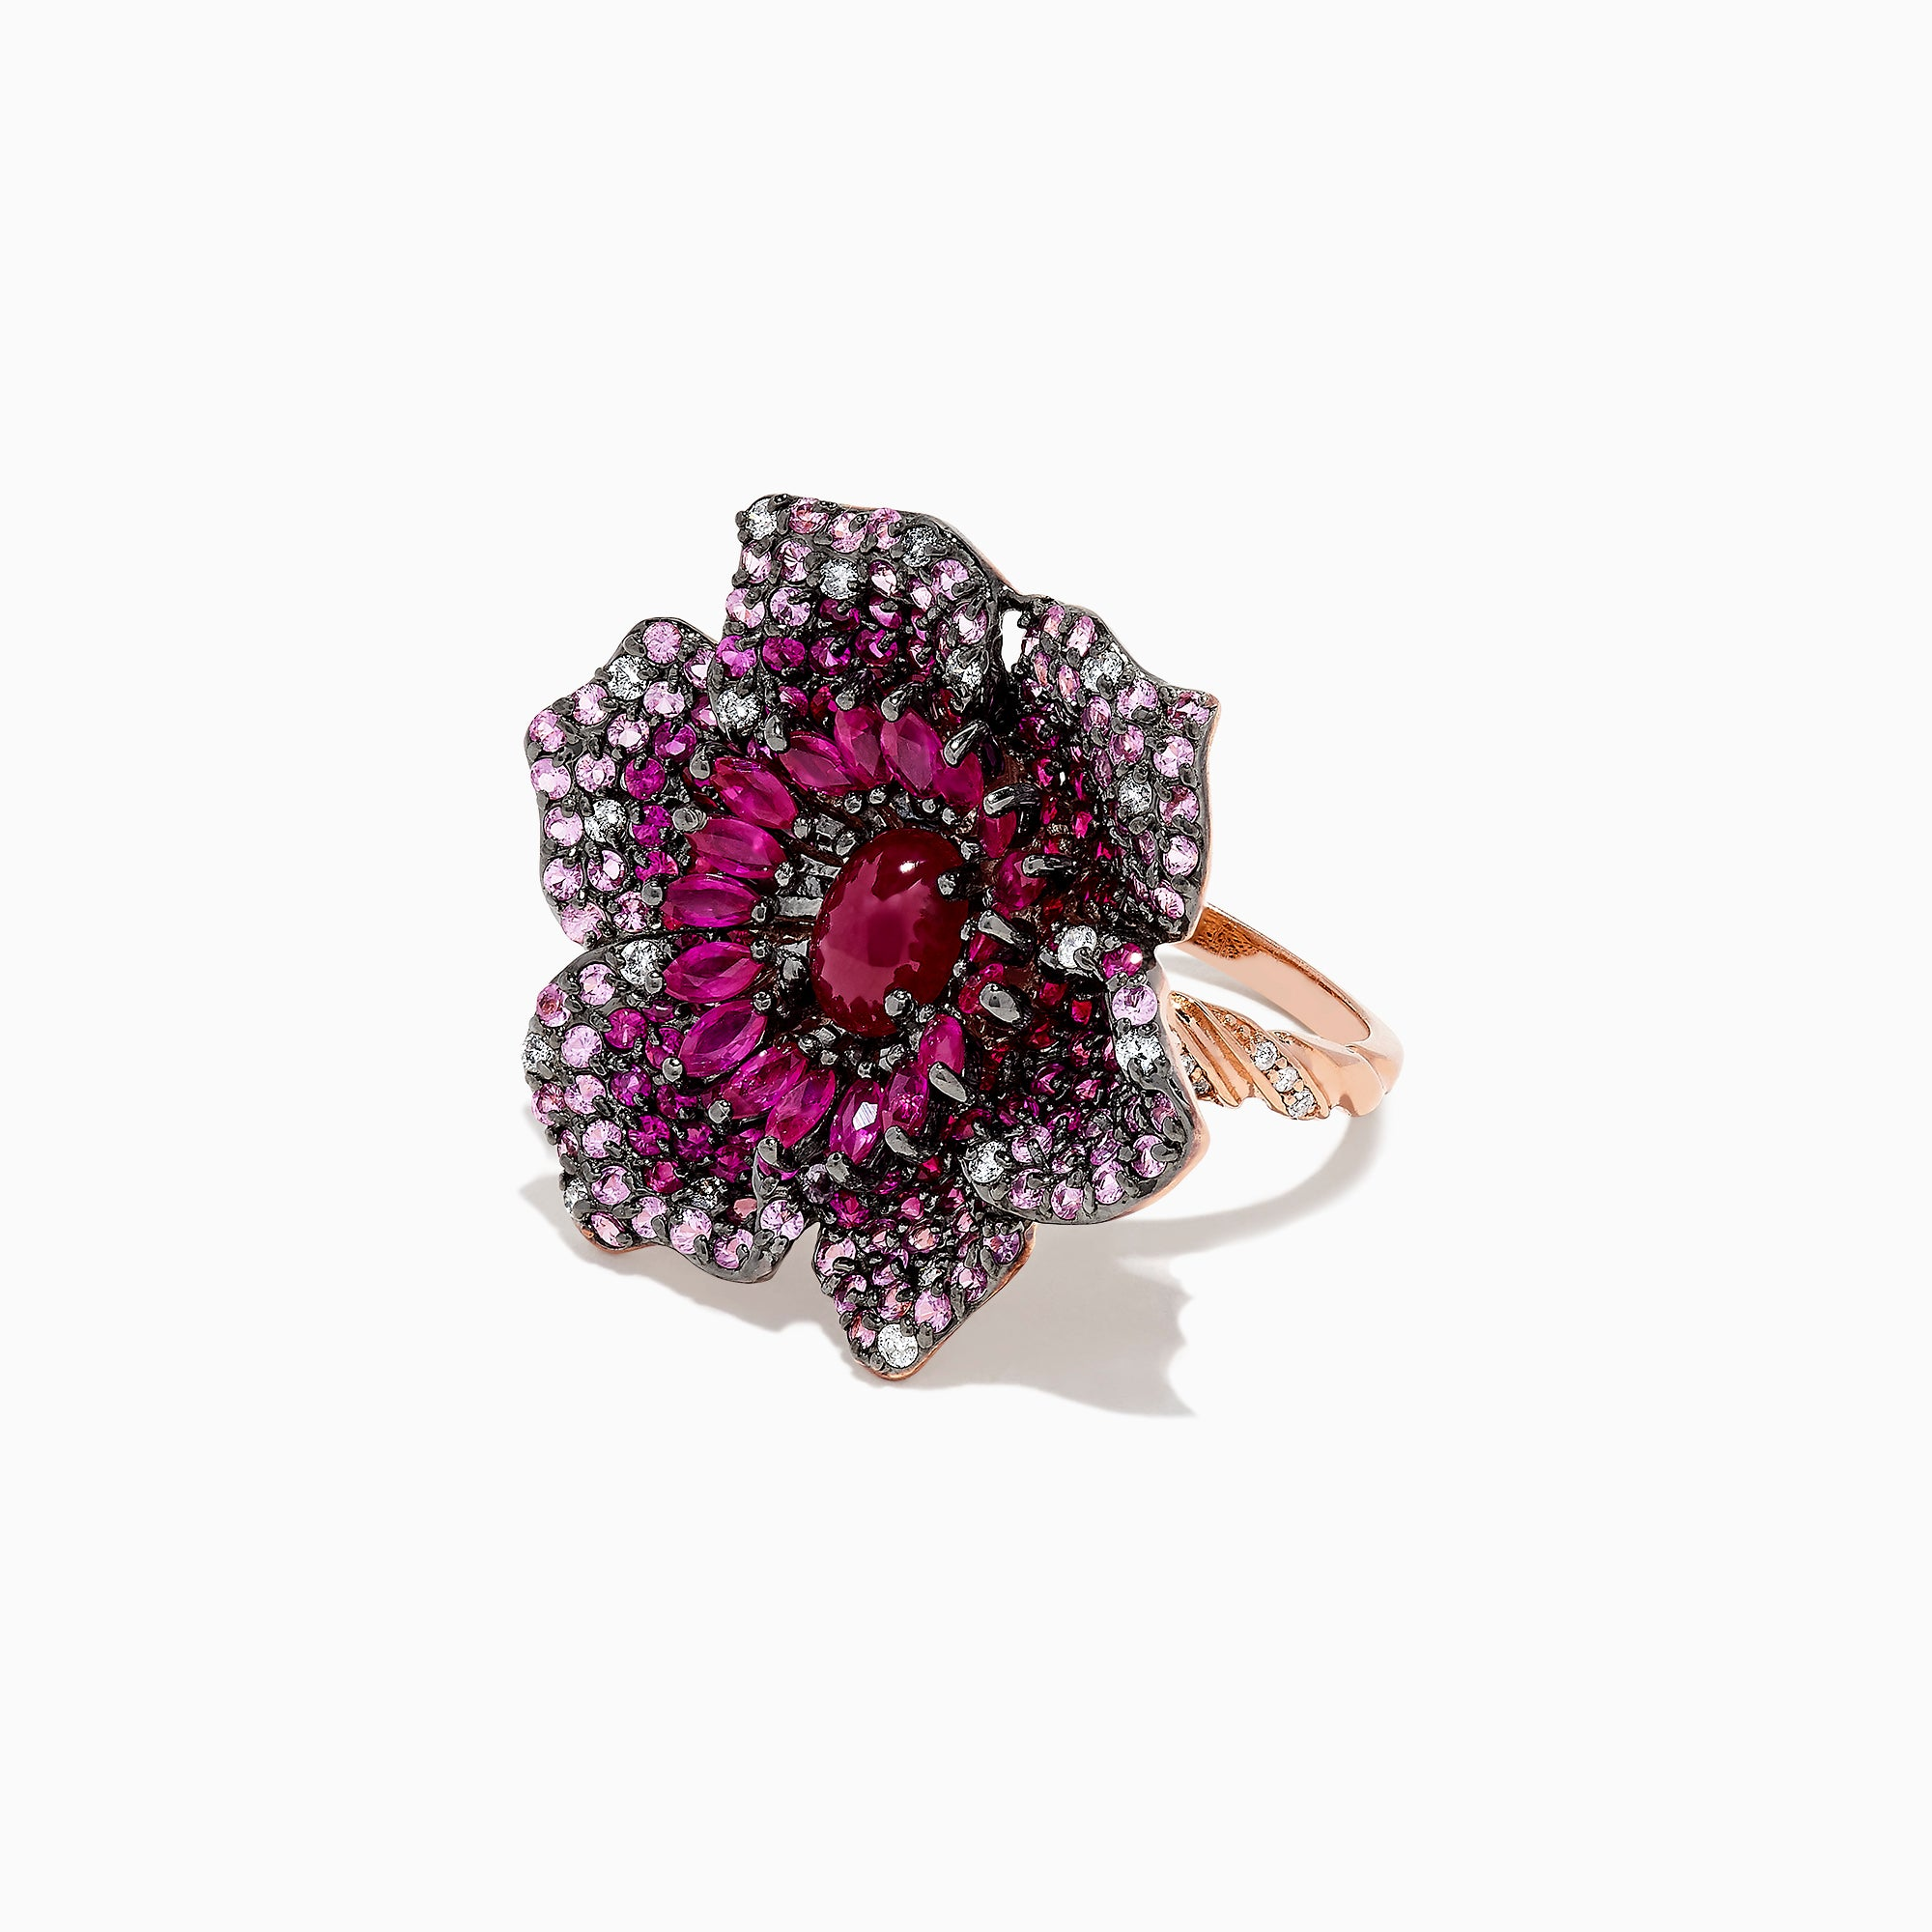 Effy 14K Rose Gold Ruby, Sapphire and Diamond Flower Ring, 5.92 TCW